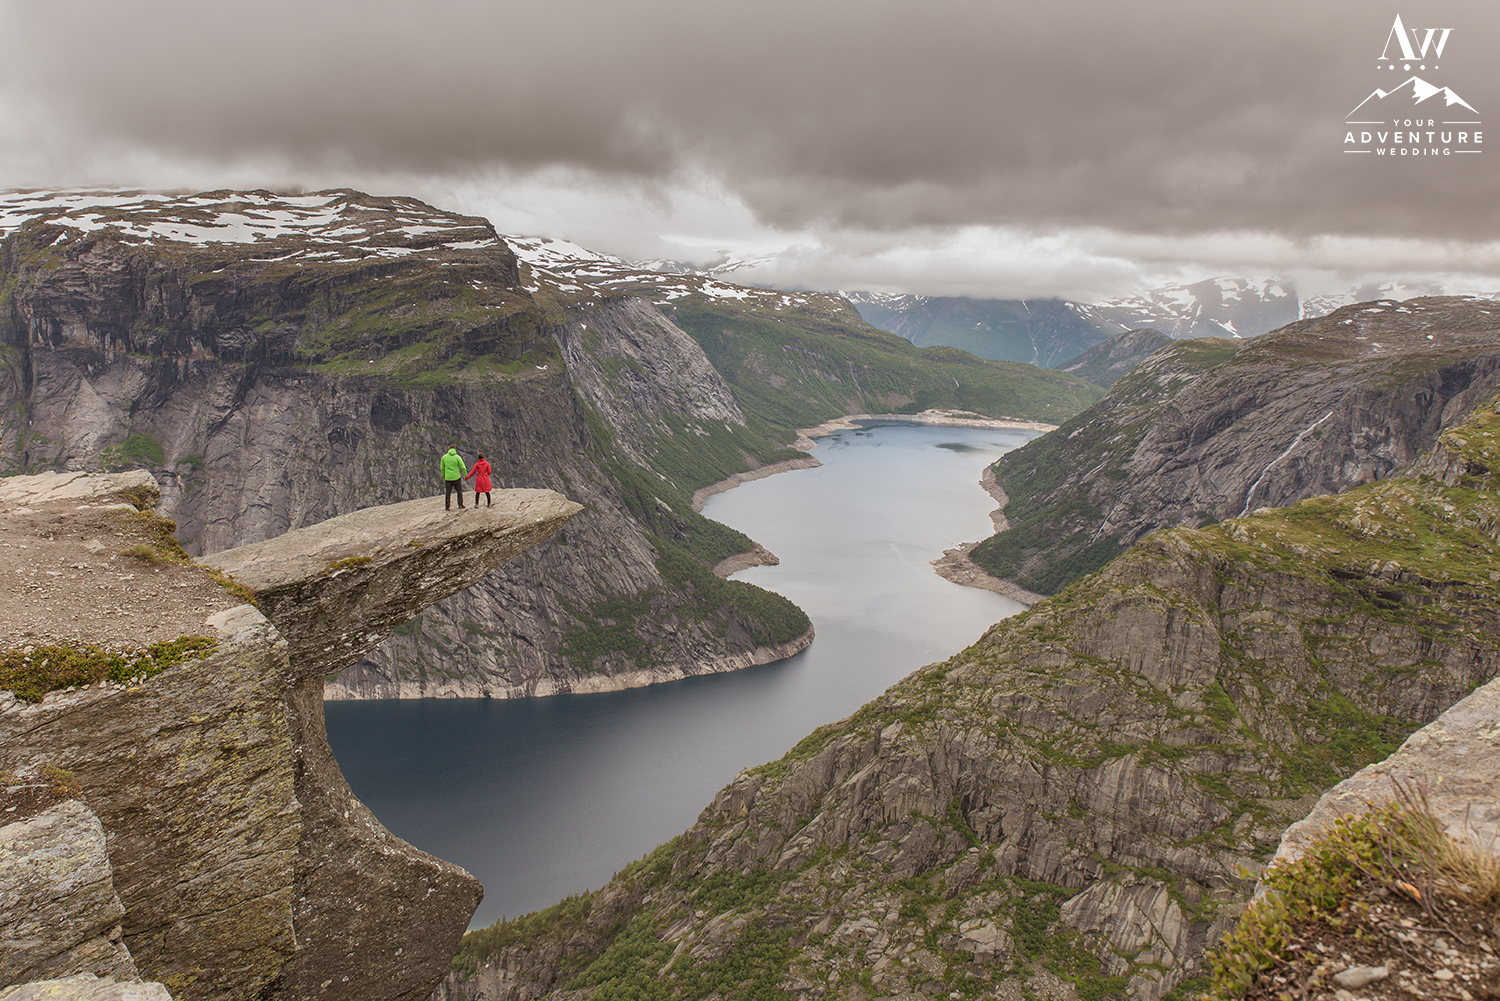 Norway Destination Wedding Photos - Your Adventure Wedding